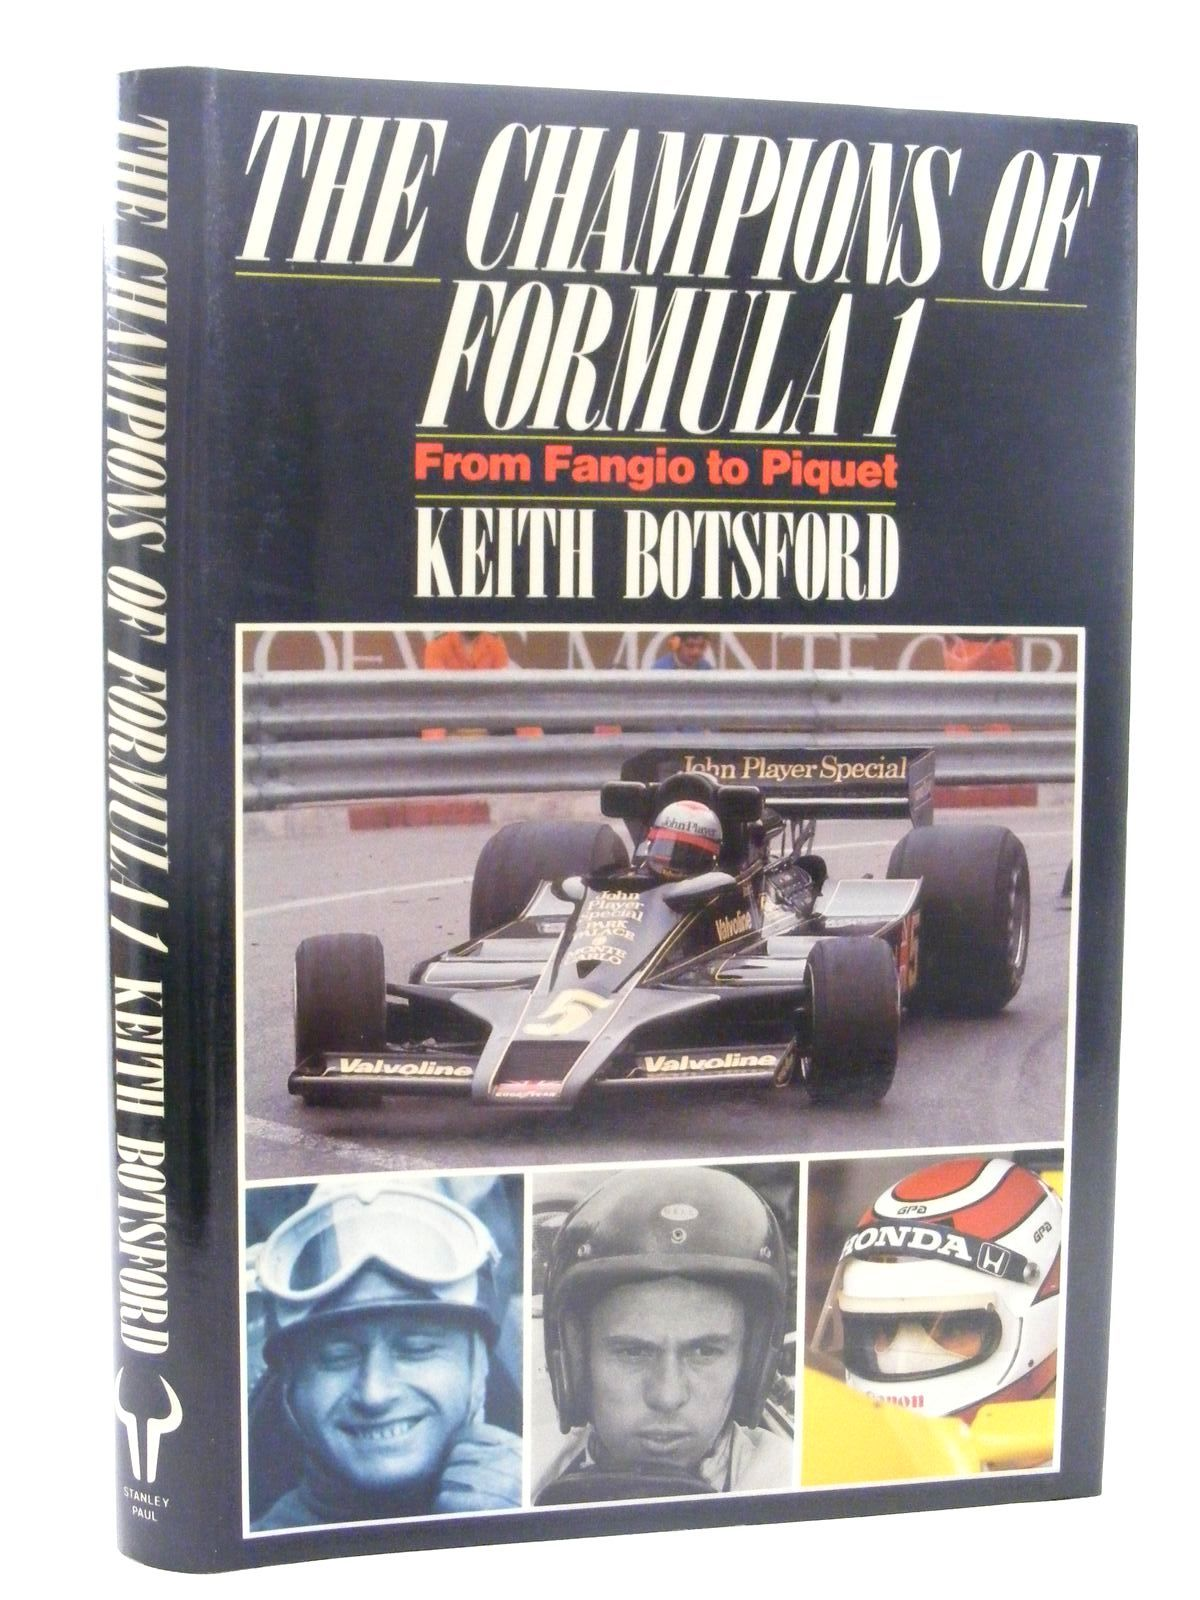 Photo of THE CHAMPIONS OF FORMULA 1 FROM FANGIO TO PIQUET written by Botsford, Keith published by Stanley Paul (STOCK CODE: 1610326)  for sale by Stella & Rose's Books